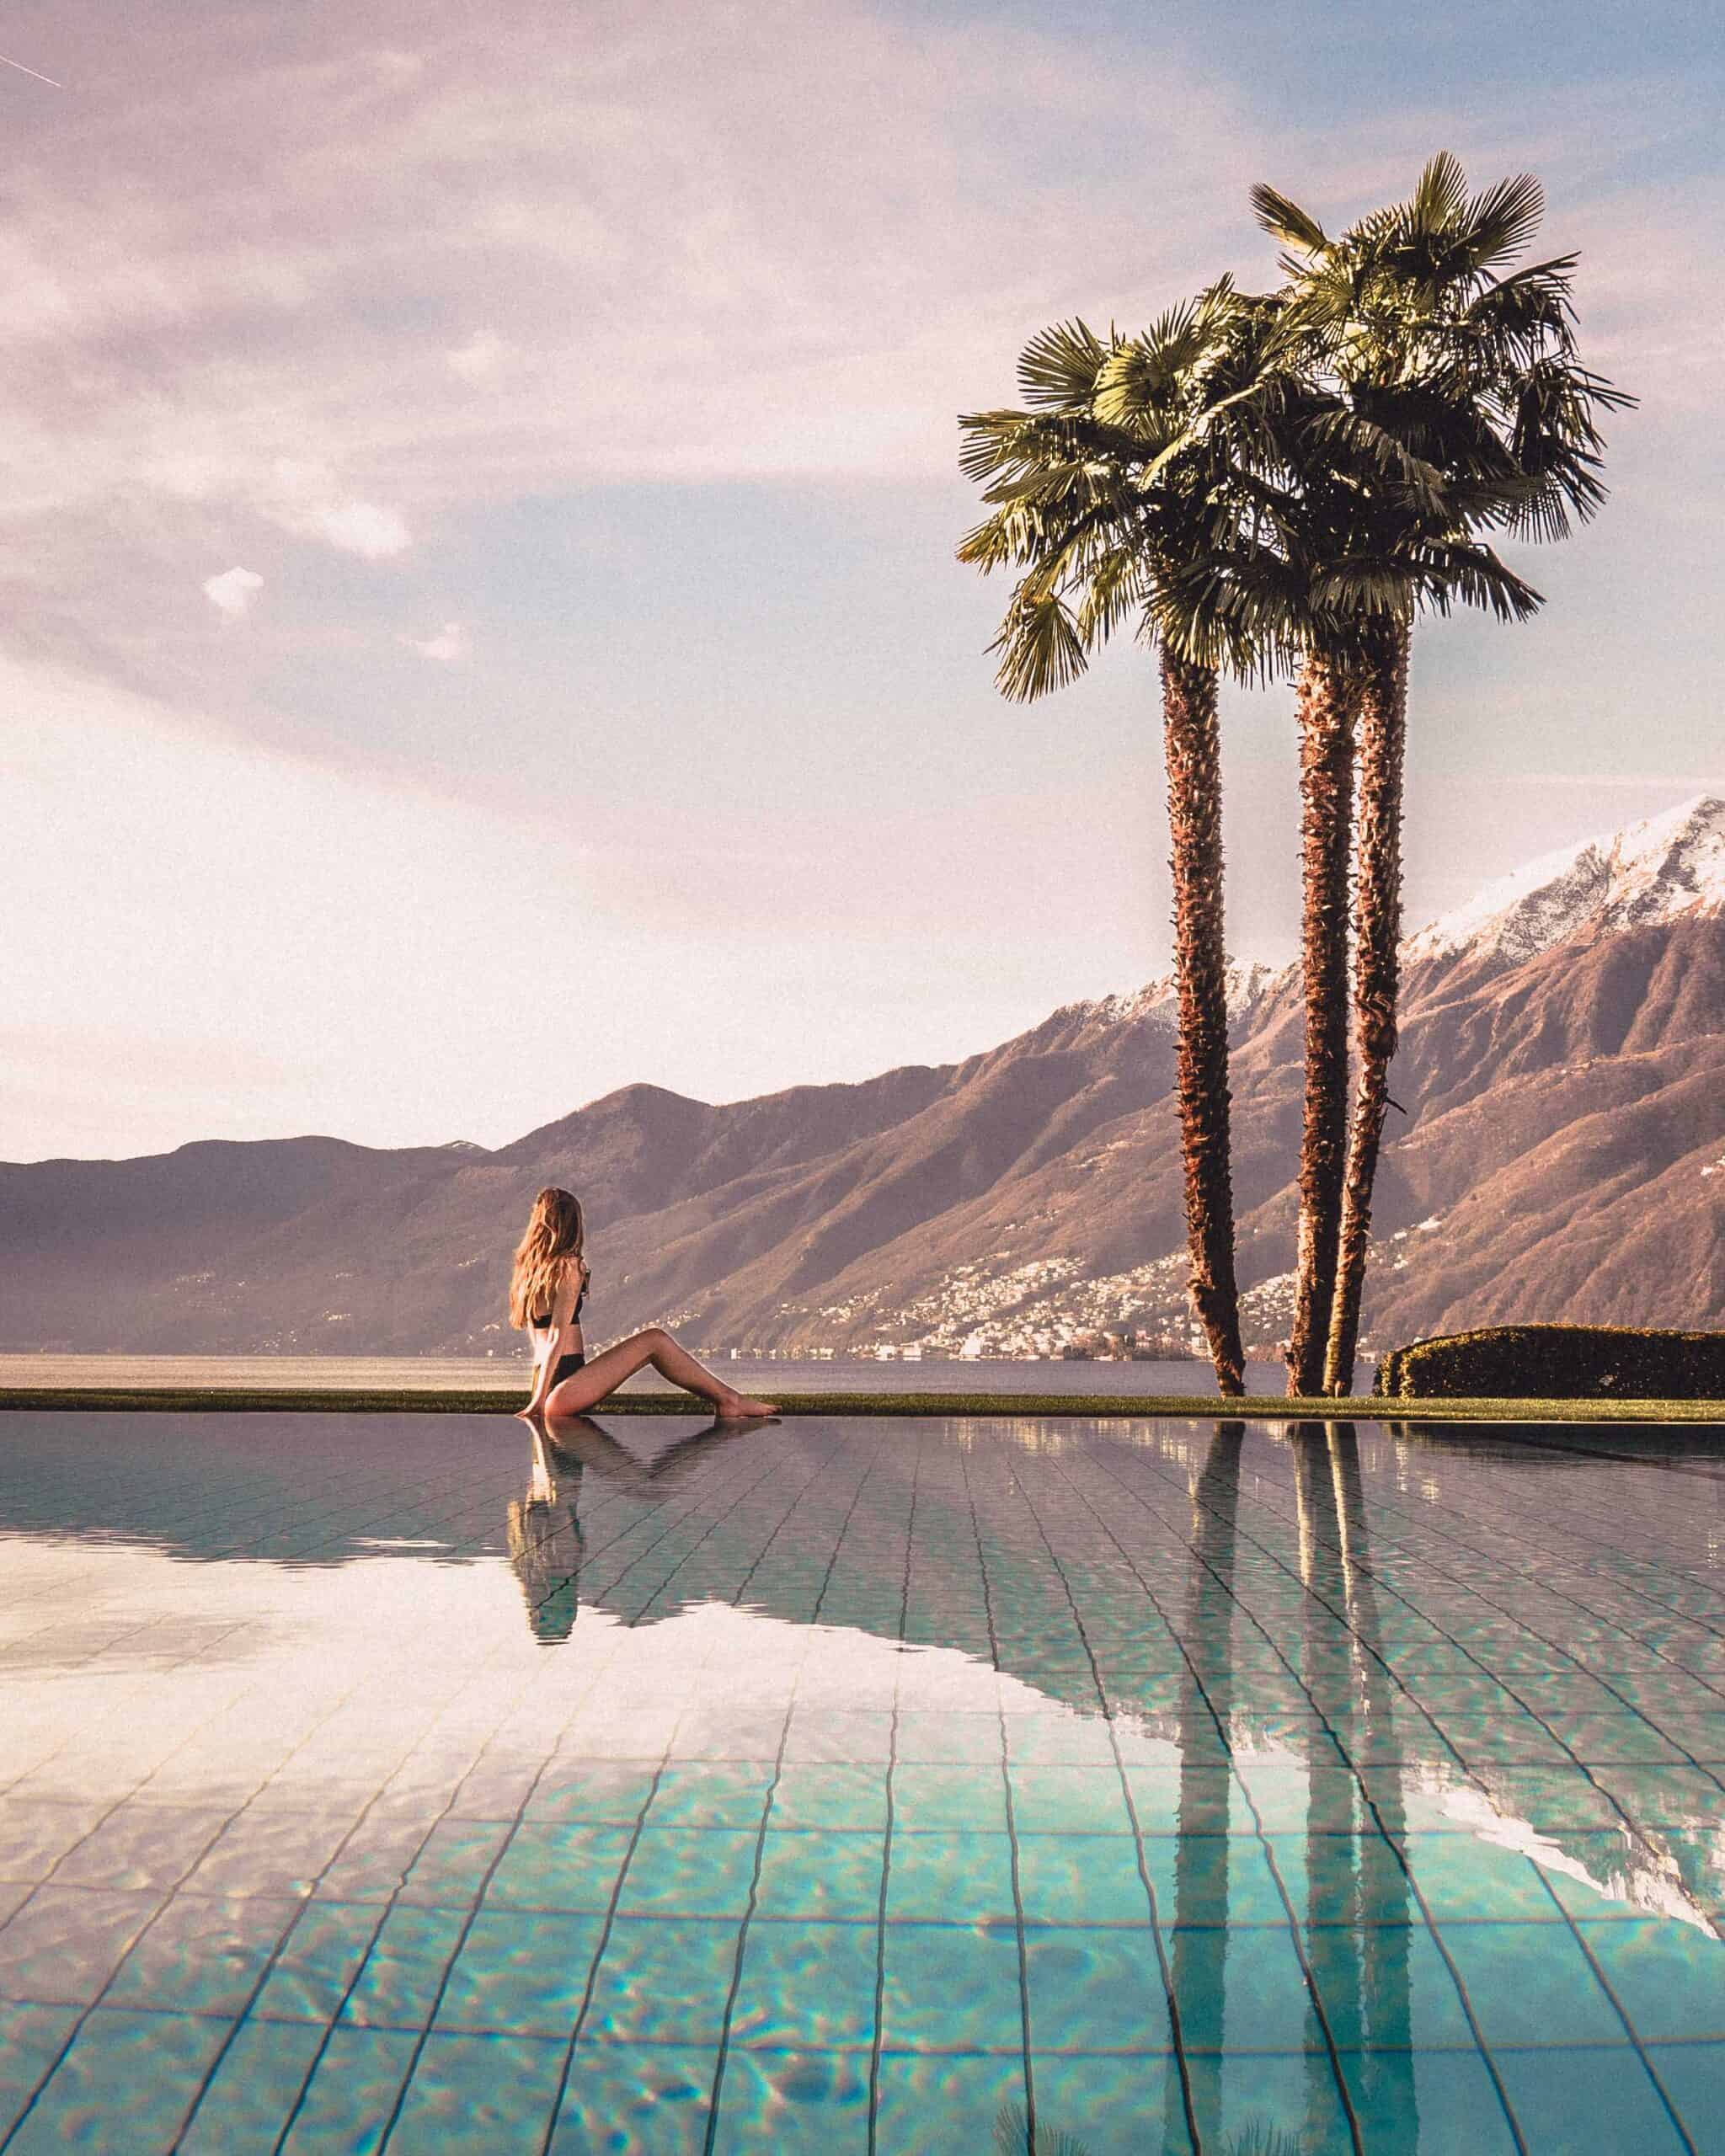 How to spend a weekend in Locarno, Ticino, Switzerland. 2 days/ 48 hours for the best things to do in Locarno, Ascona, and Lago Maggiore in Switzerland